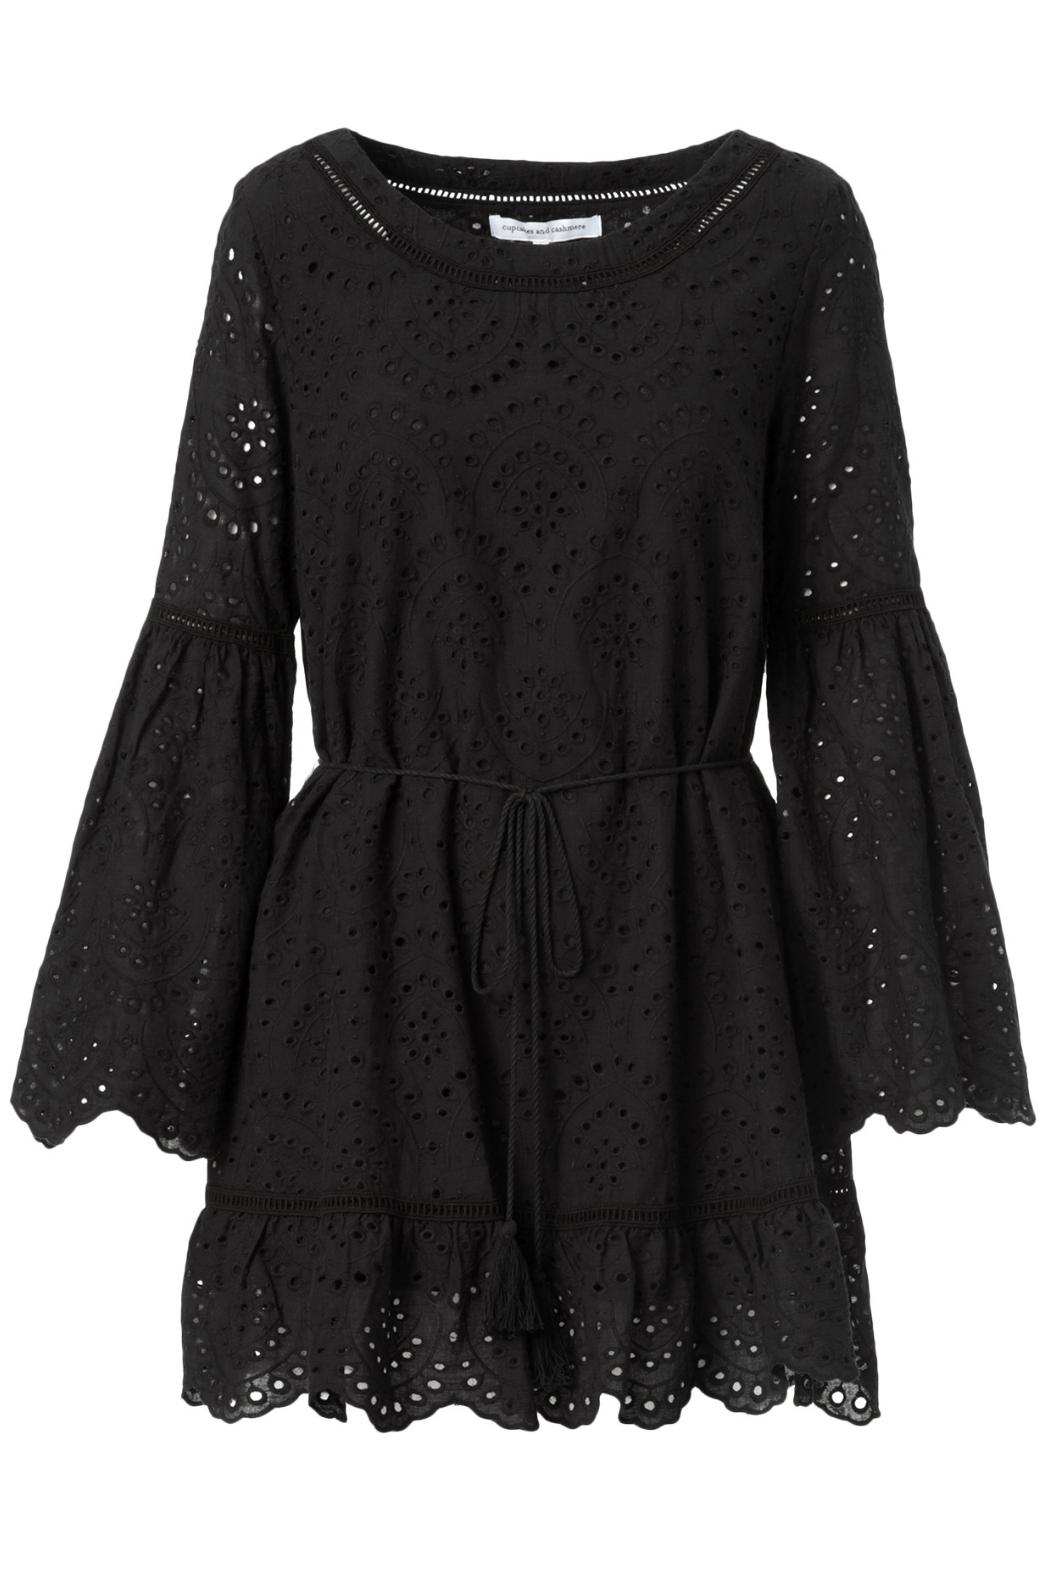 Cupcakes and Cashmere Ruben Flutter Dress - Back Cropped Image